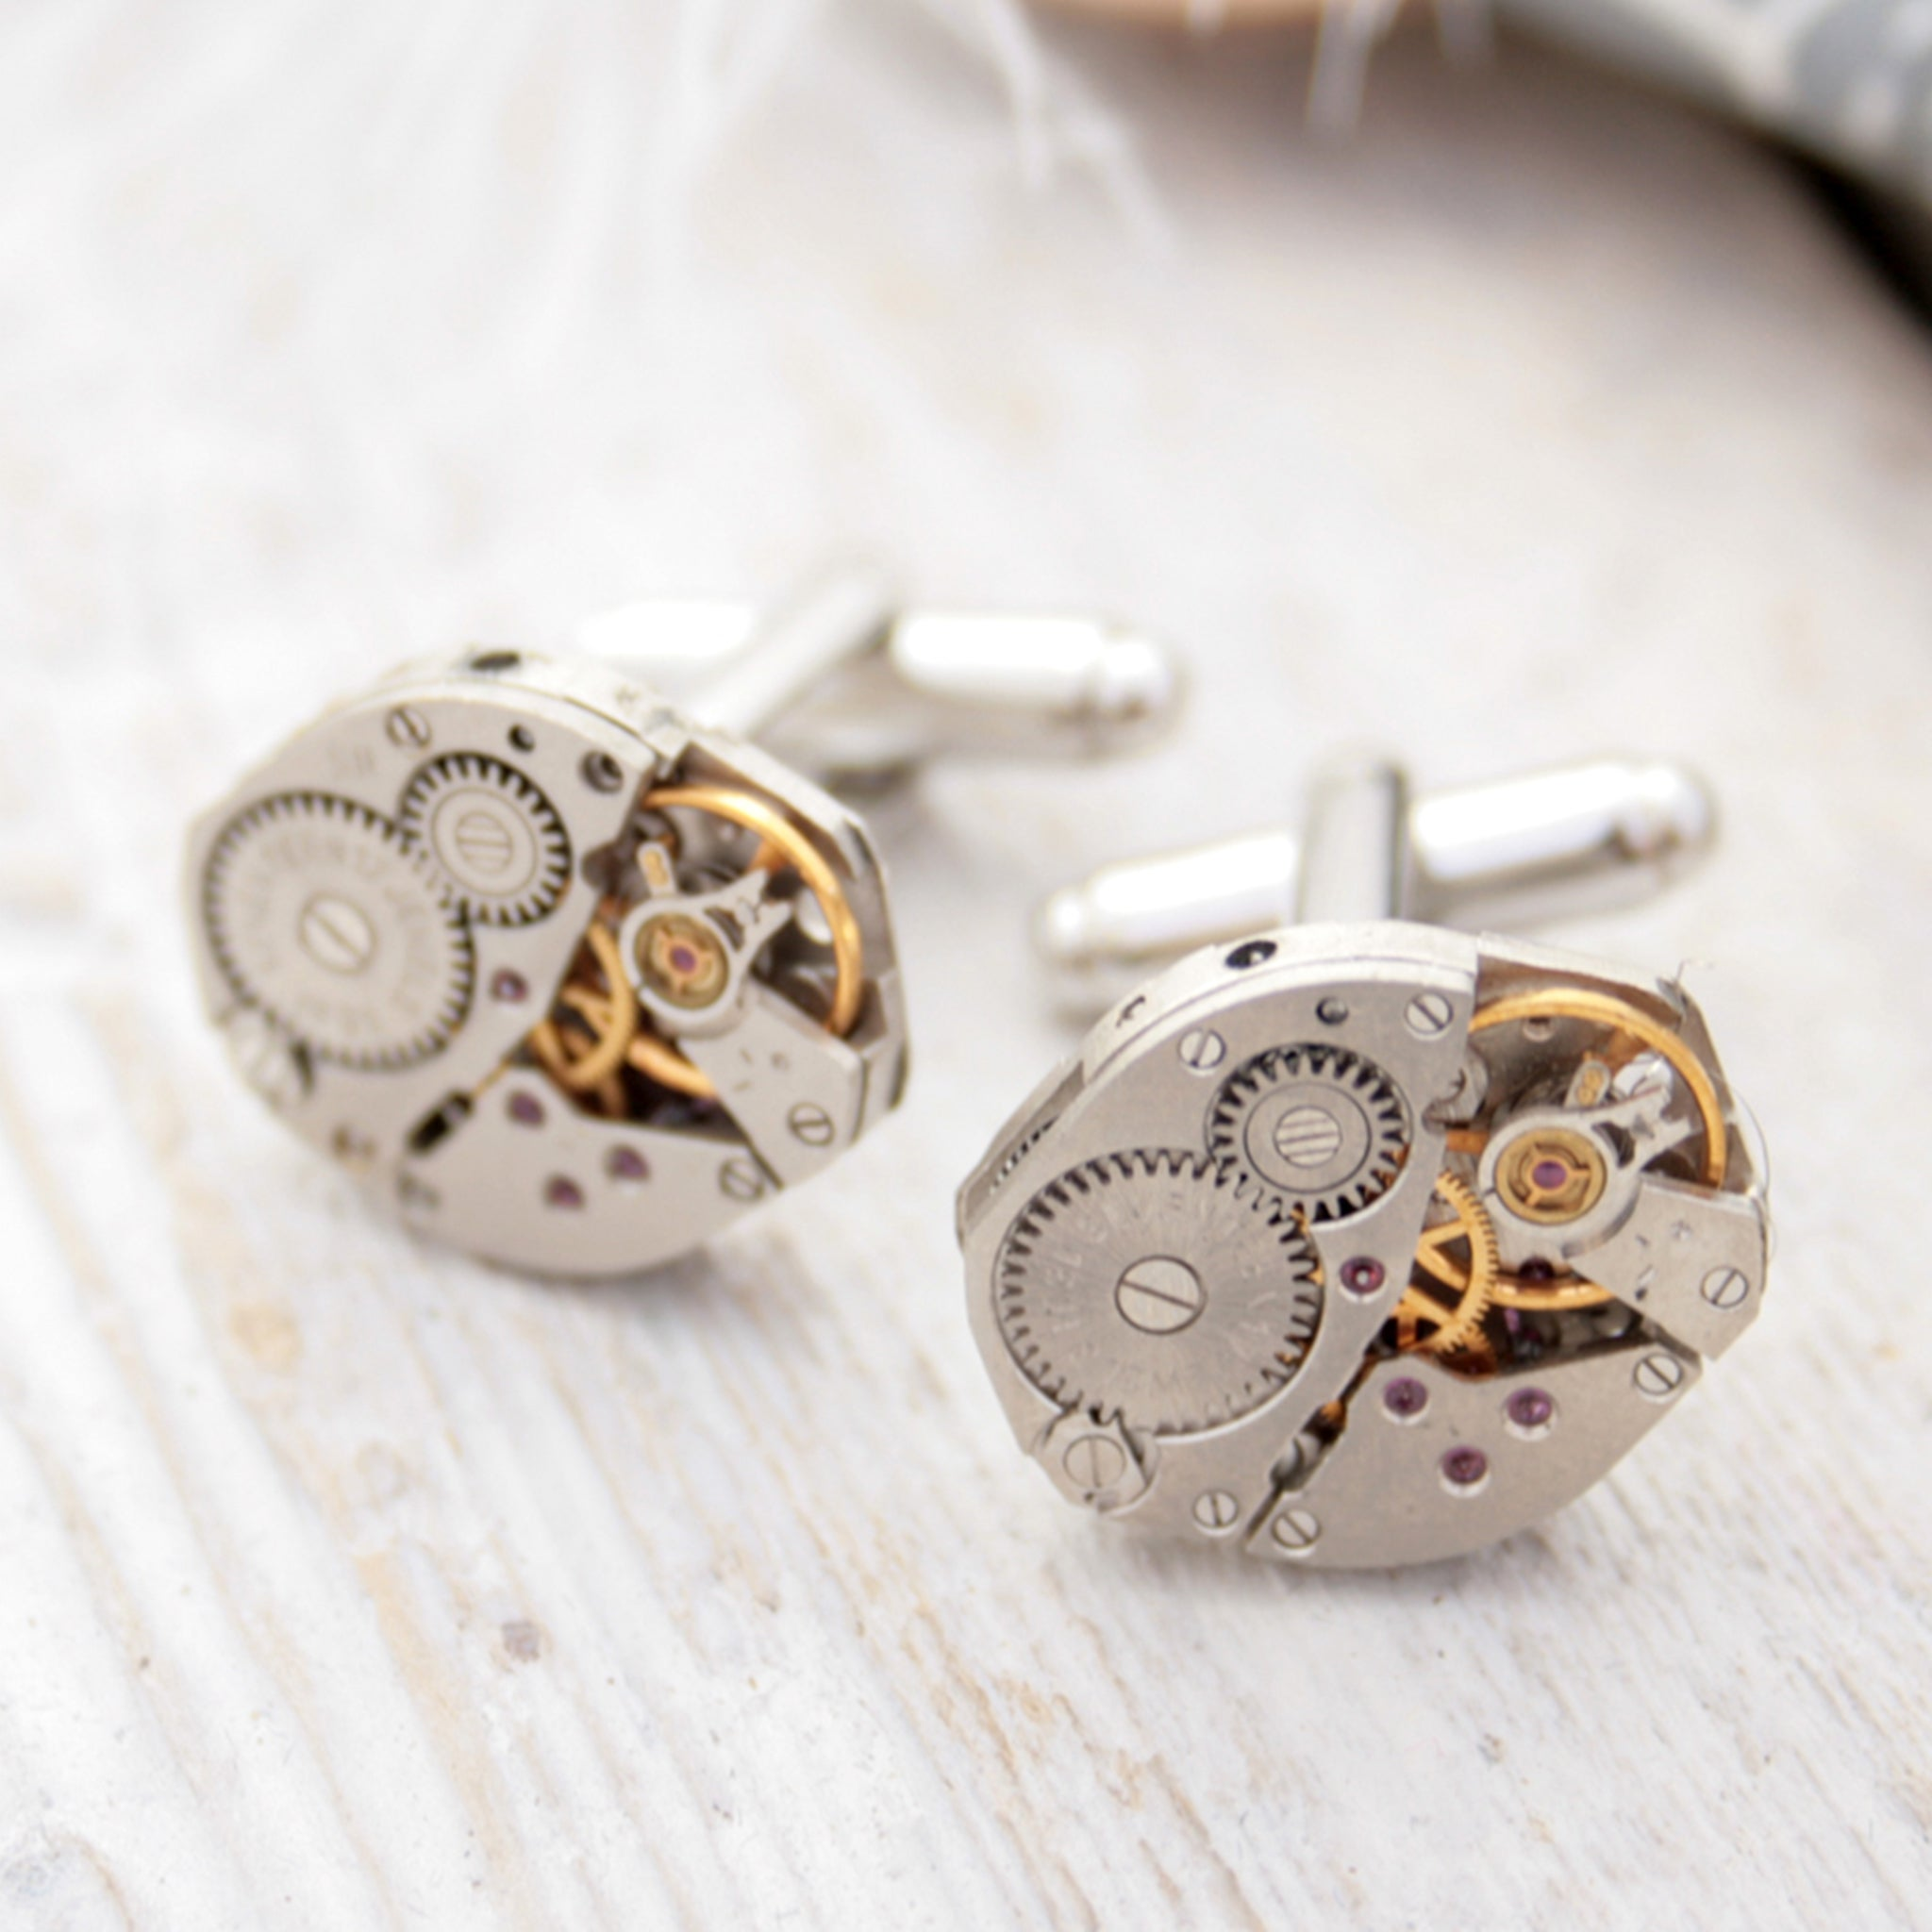 steampunk cufflinks for men featuring antique watch movements